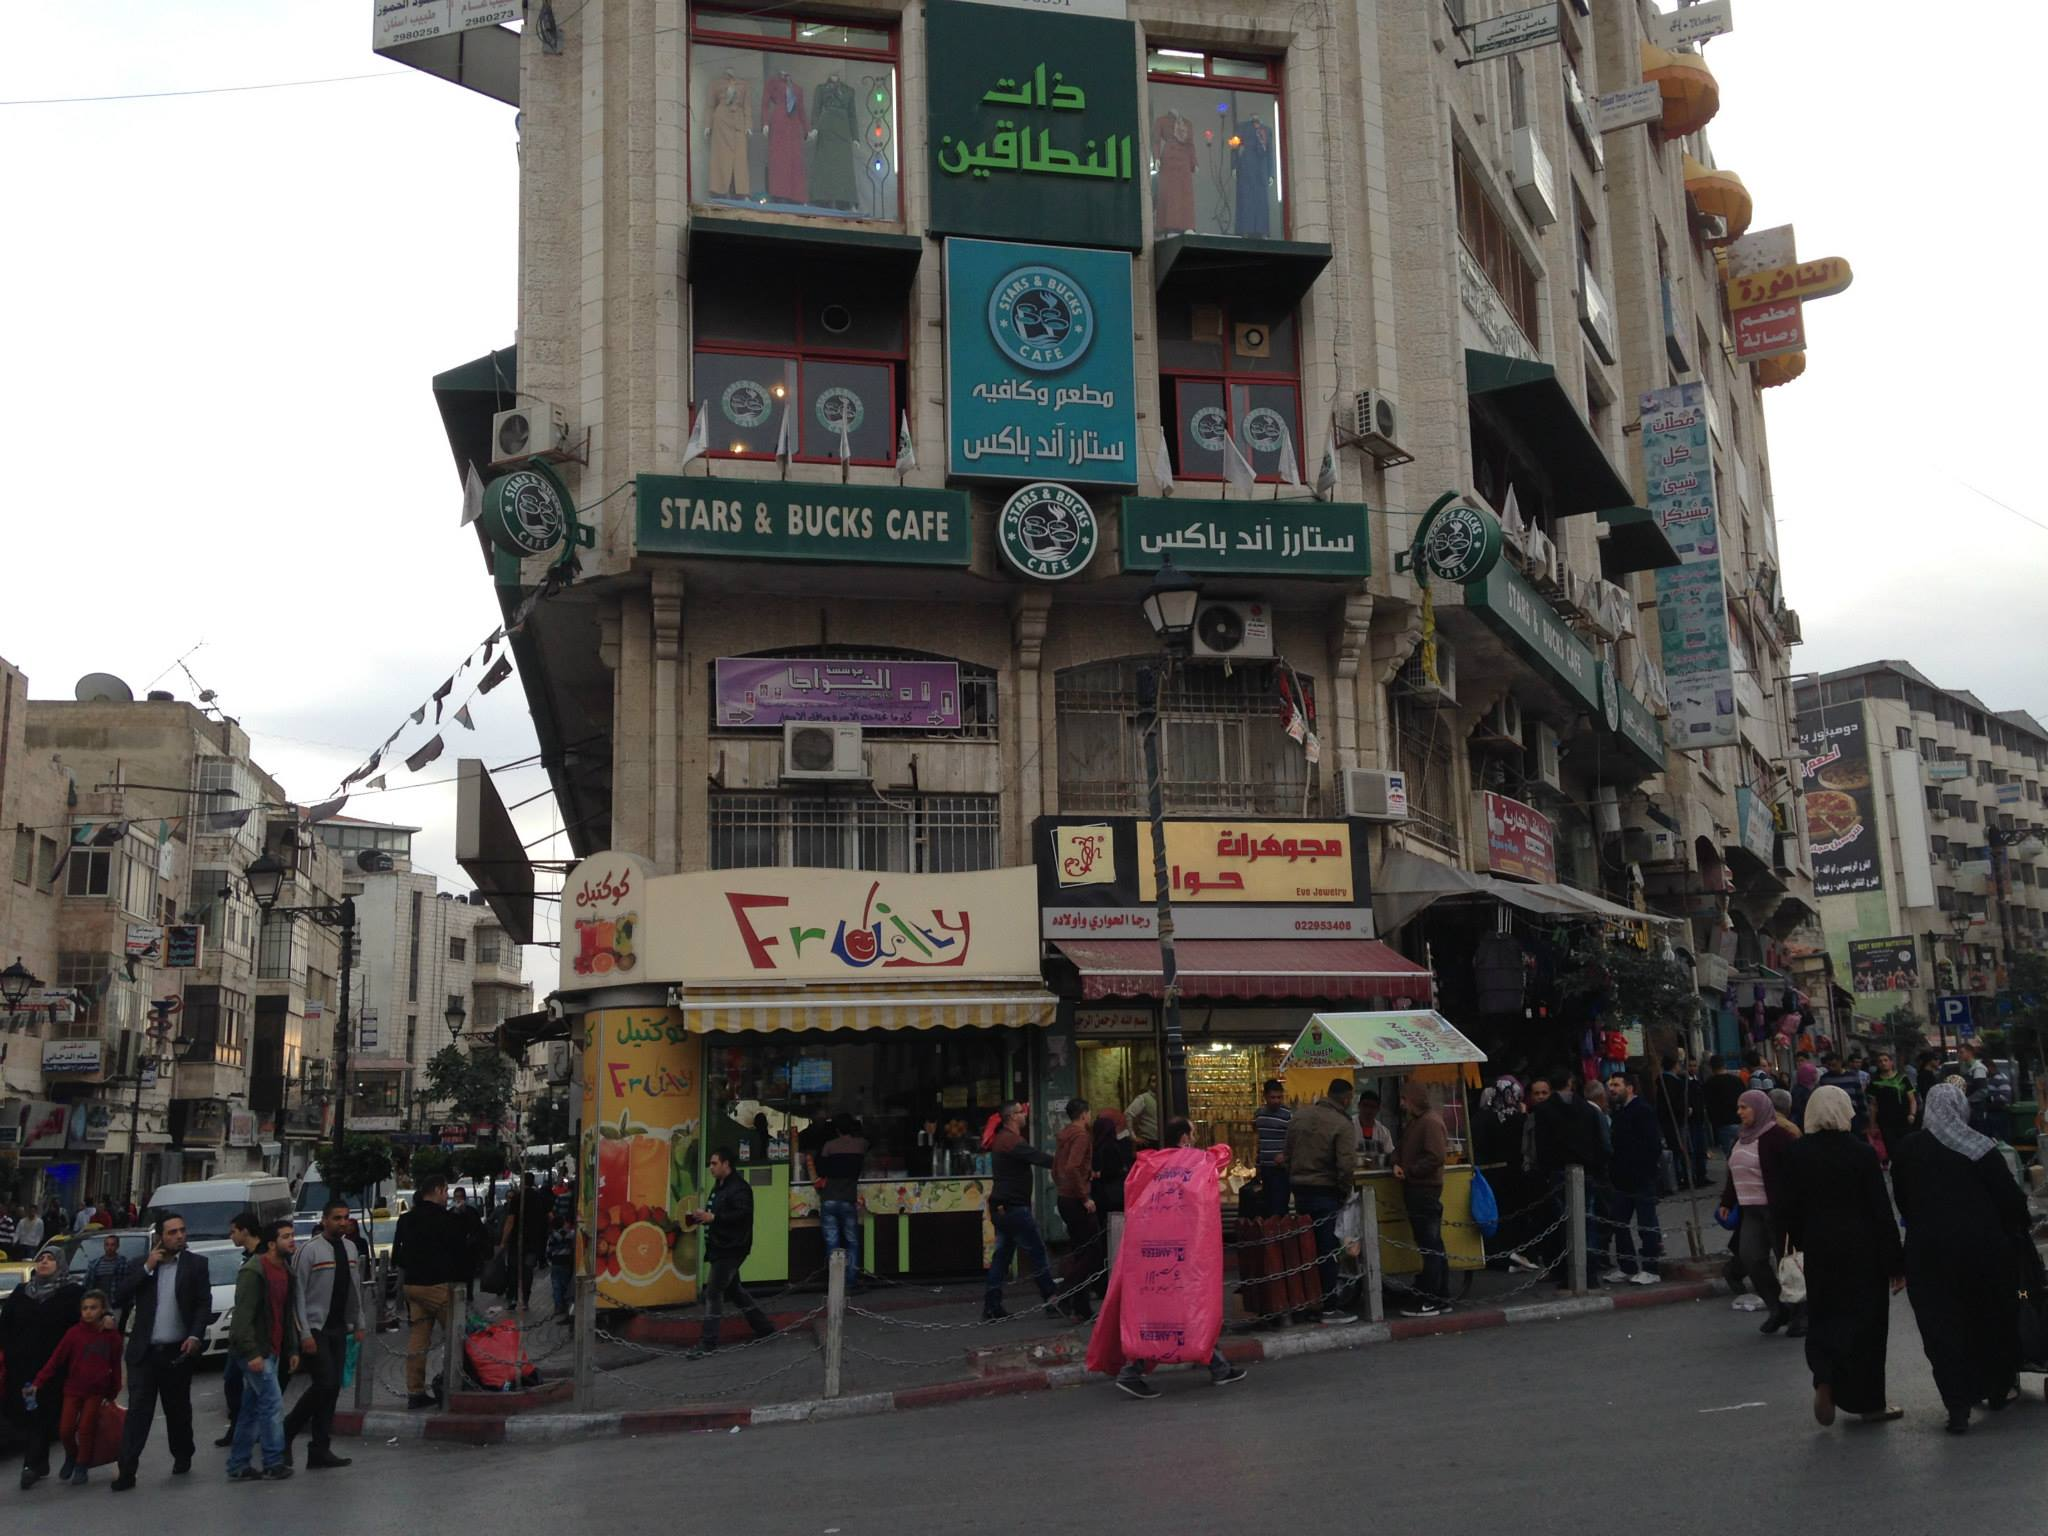 Een Starbucks-spoof aan Manara Square in Ramallah